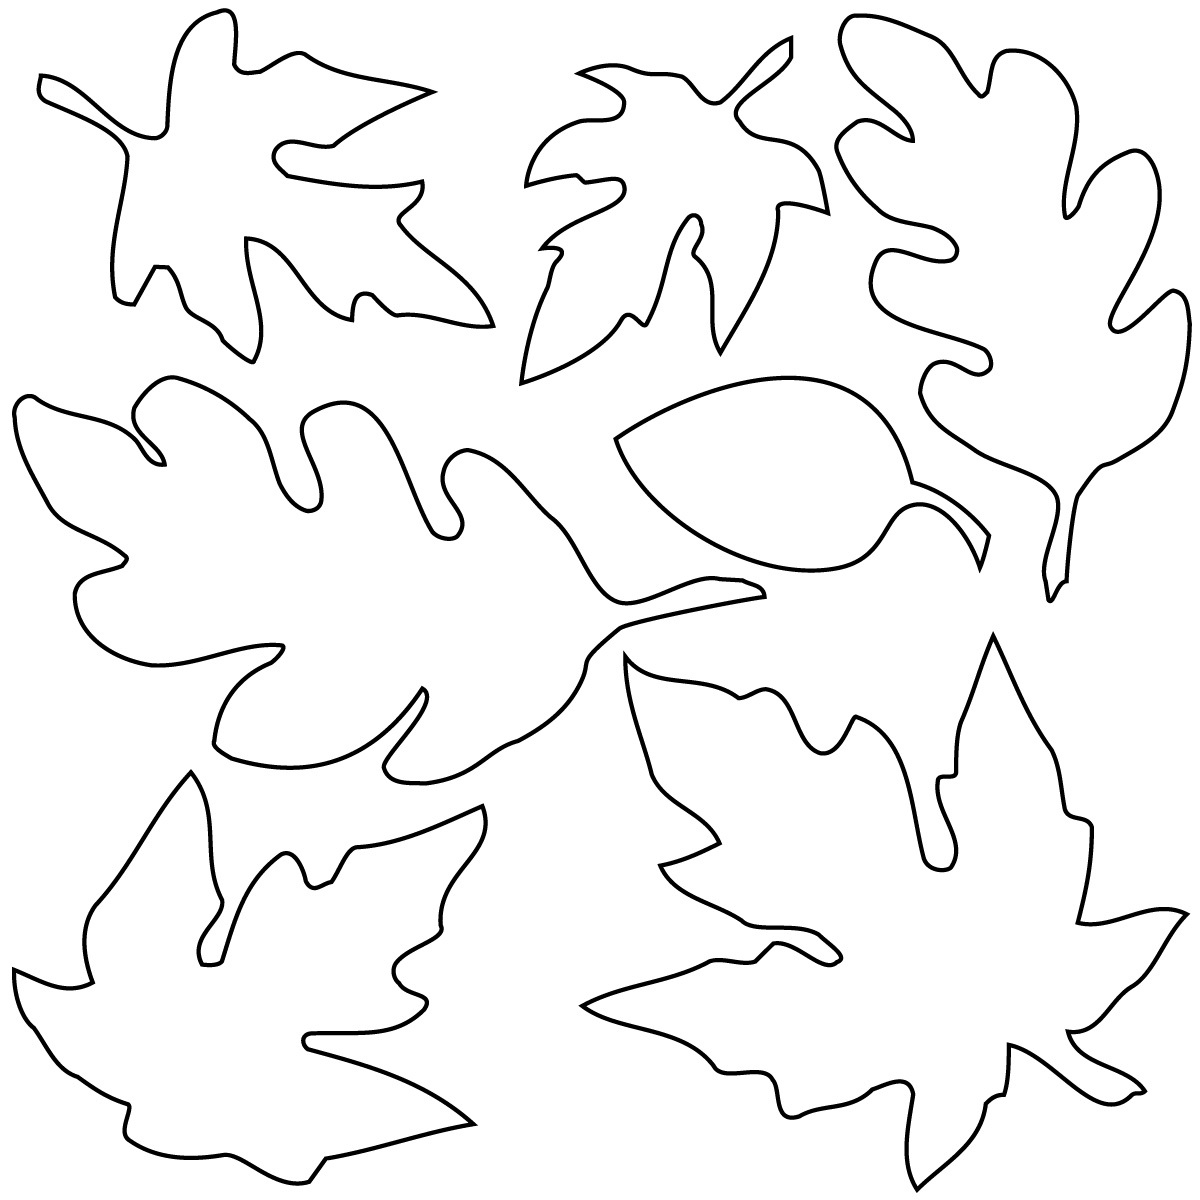 free colouring pictures autumn leaves fall coloring pages for young children free instant download autumn free pictures colouring leaves